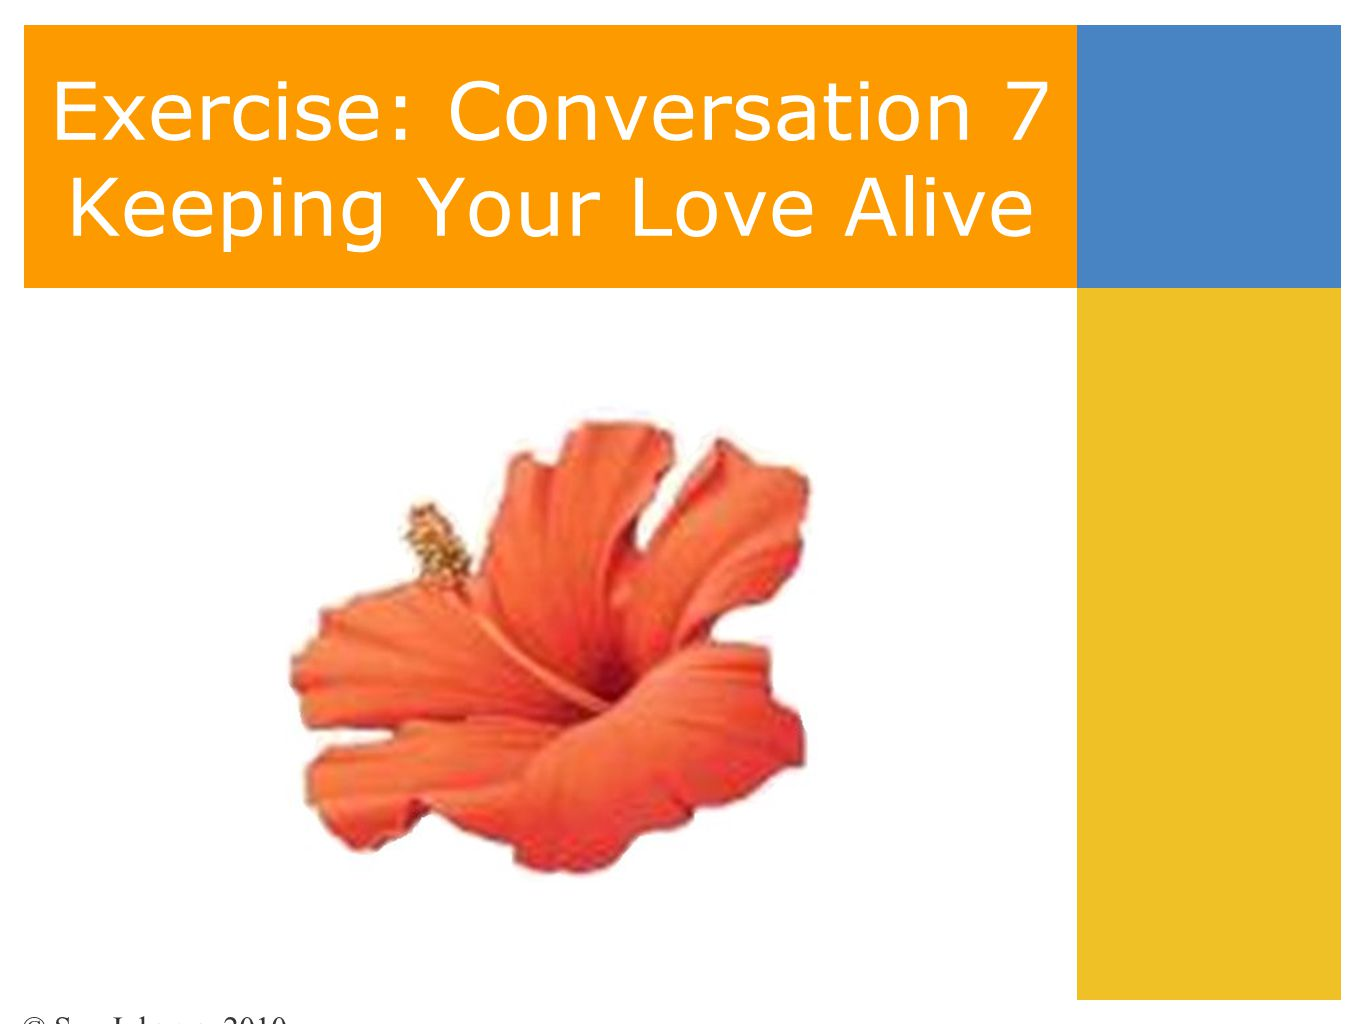 Exercise: Conversation 7 Keeping Your Love Alive